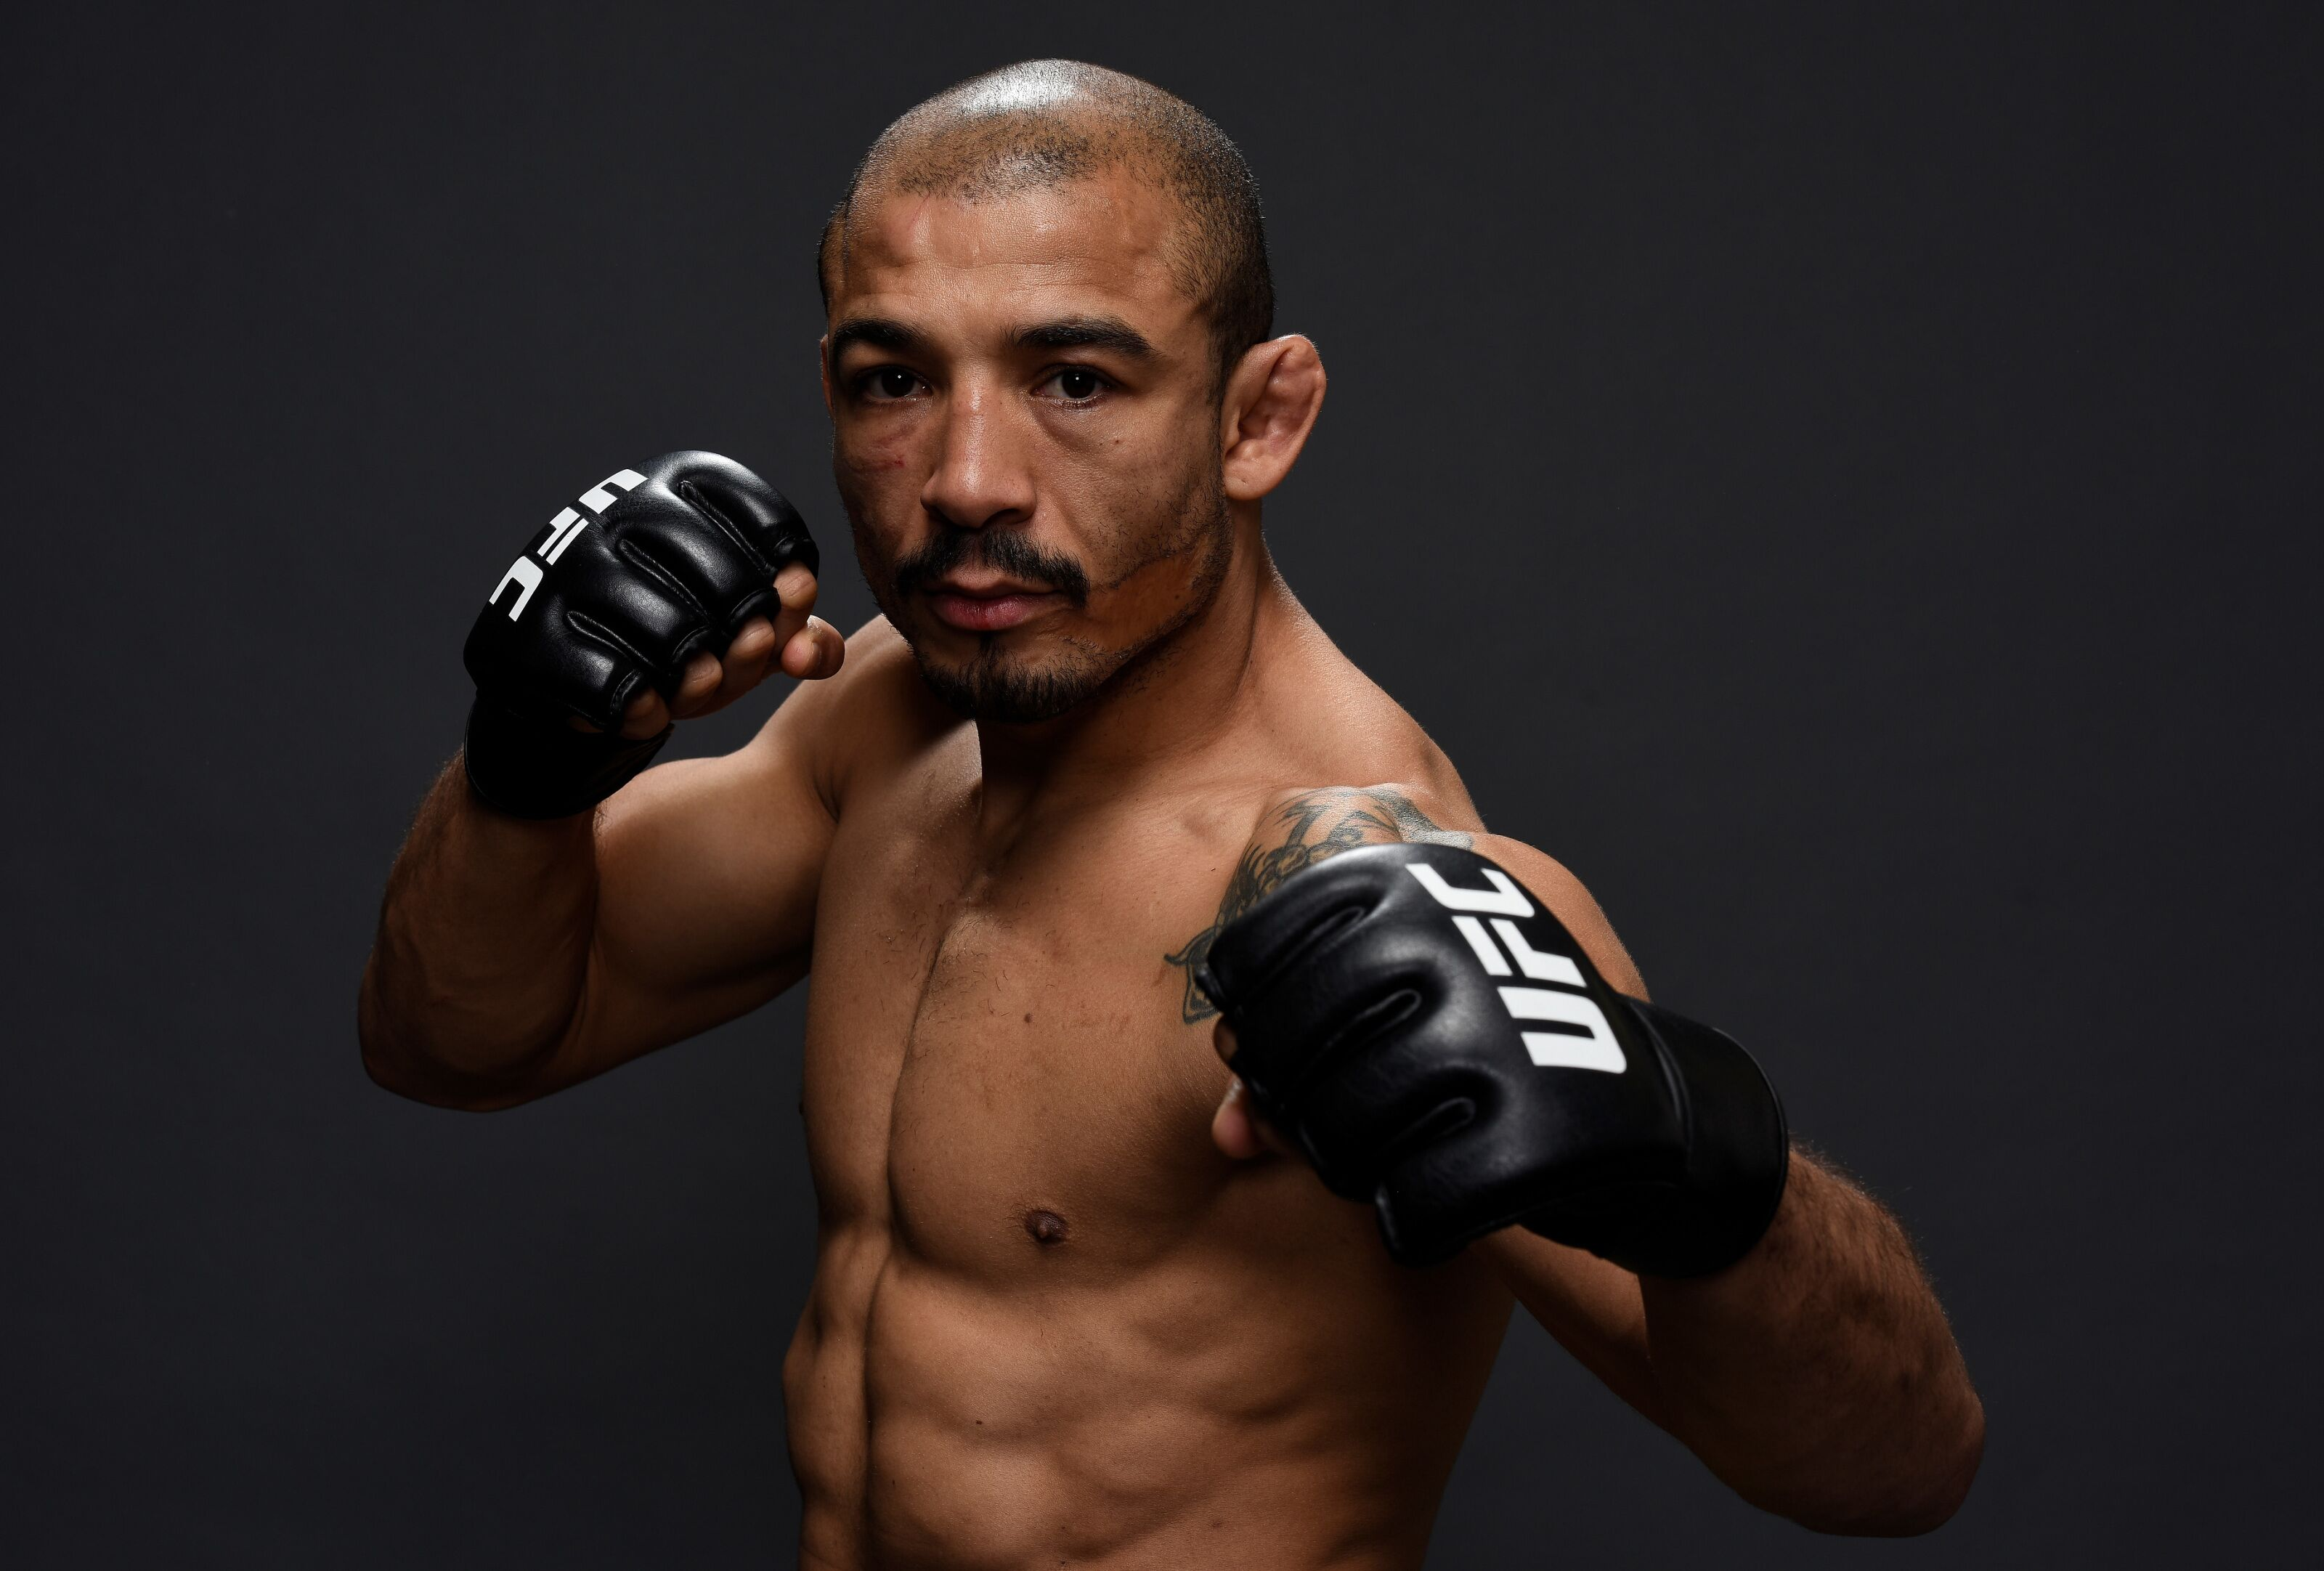 Jose Aldo not retiring, signs contract extension